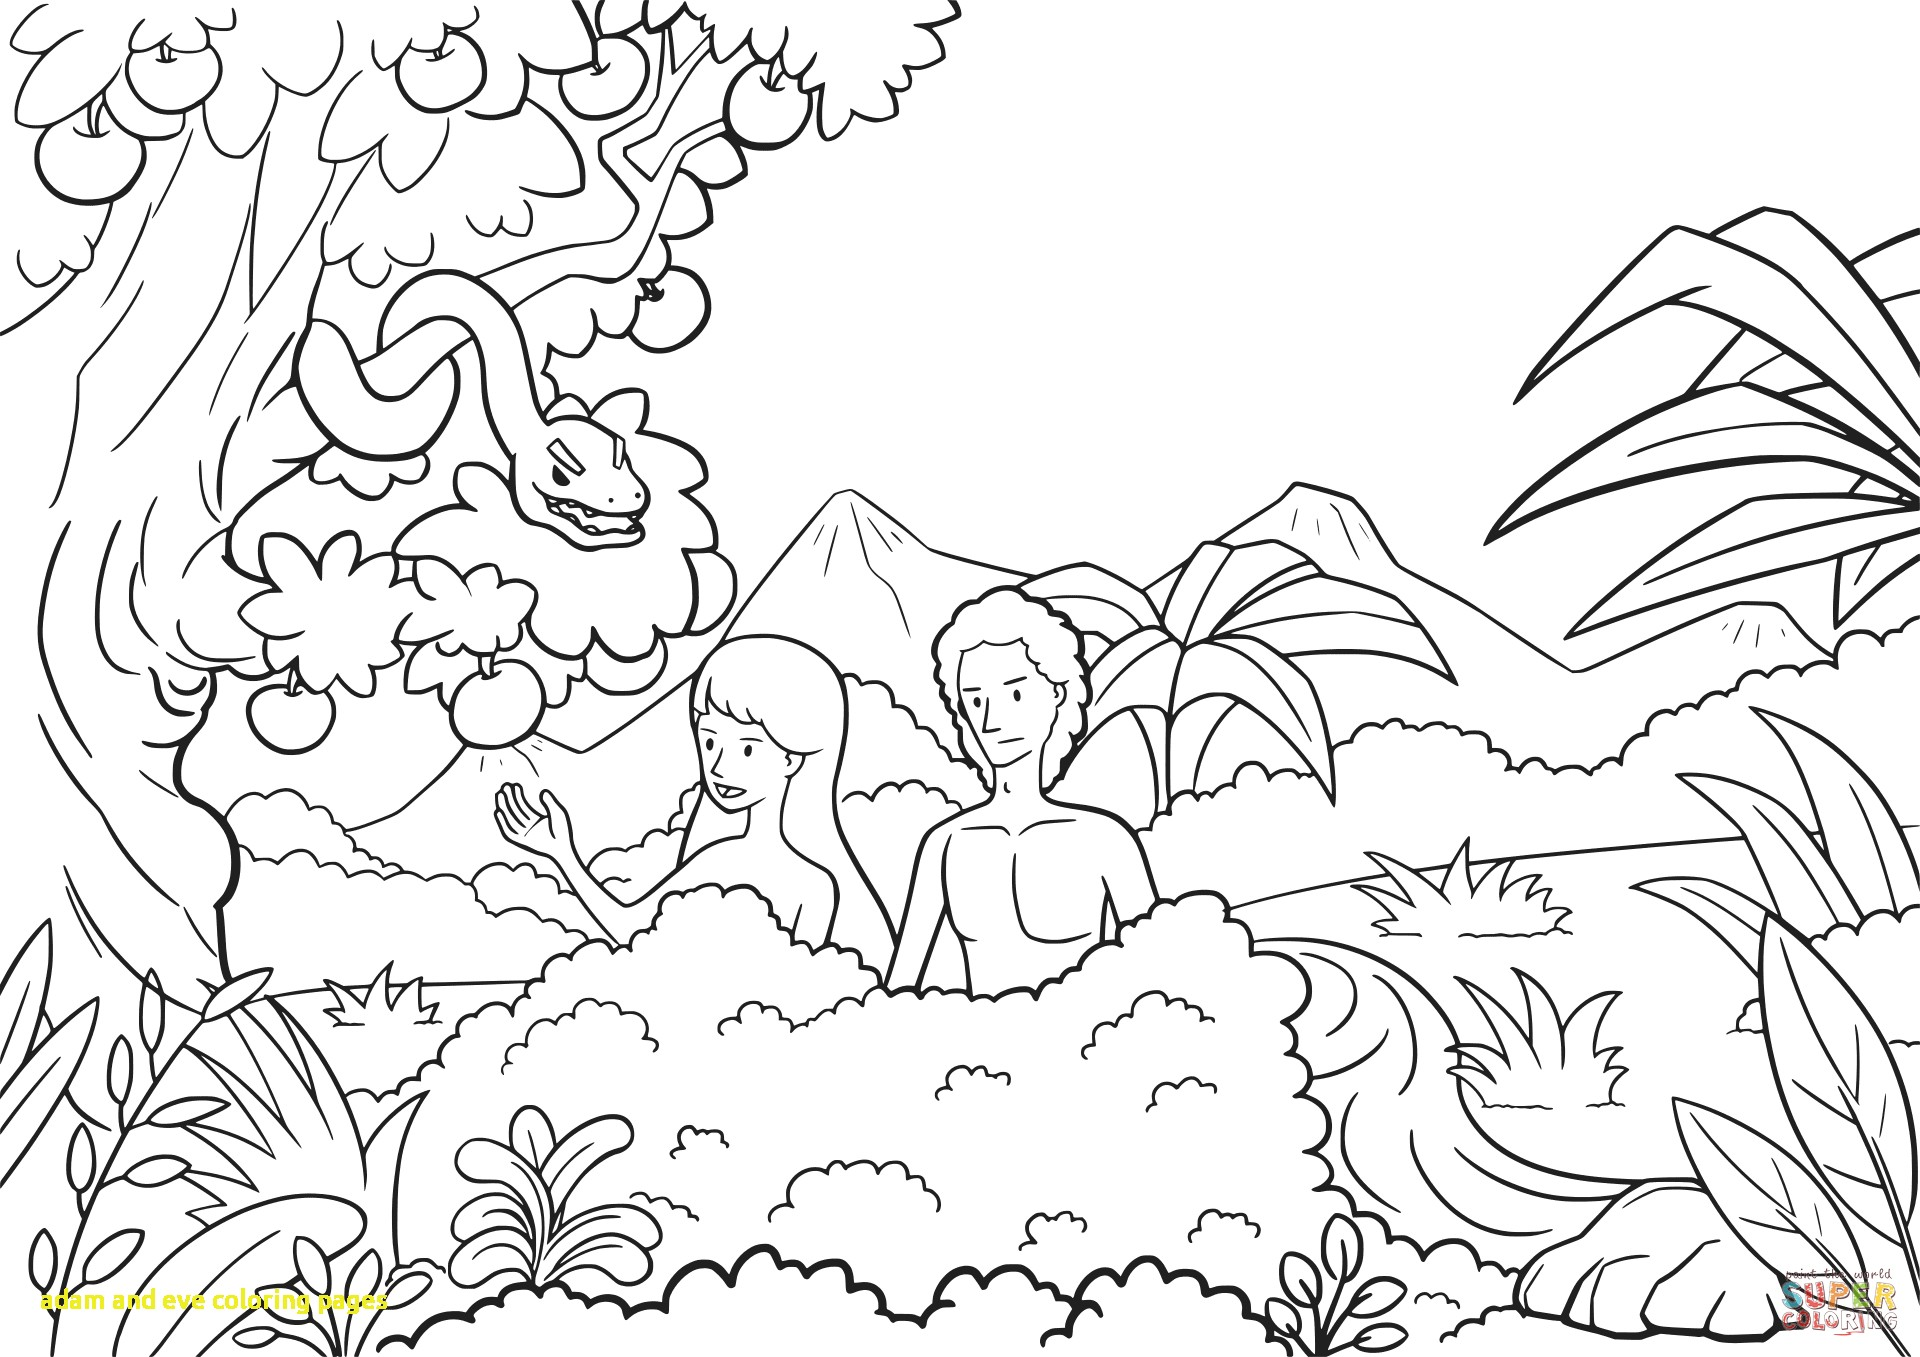 Garden Of Eden Drawing At Getdrawings